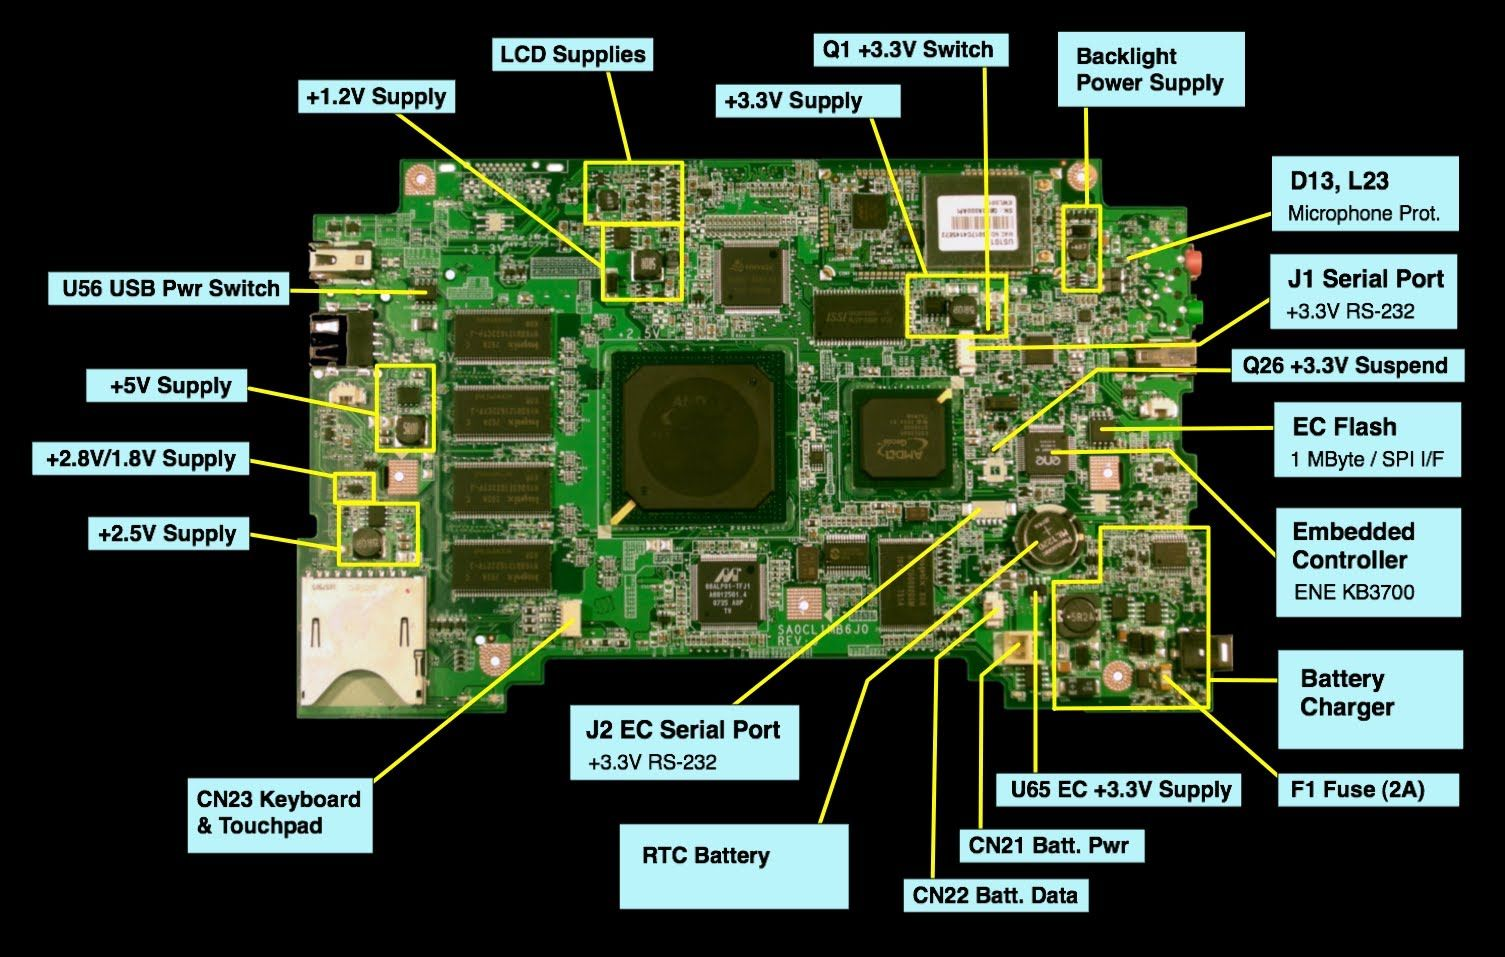 diagram showing the inside components of a laptop battery stockdiagram showing the internal parts of computer [ 1505 x 957 Pixel ]